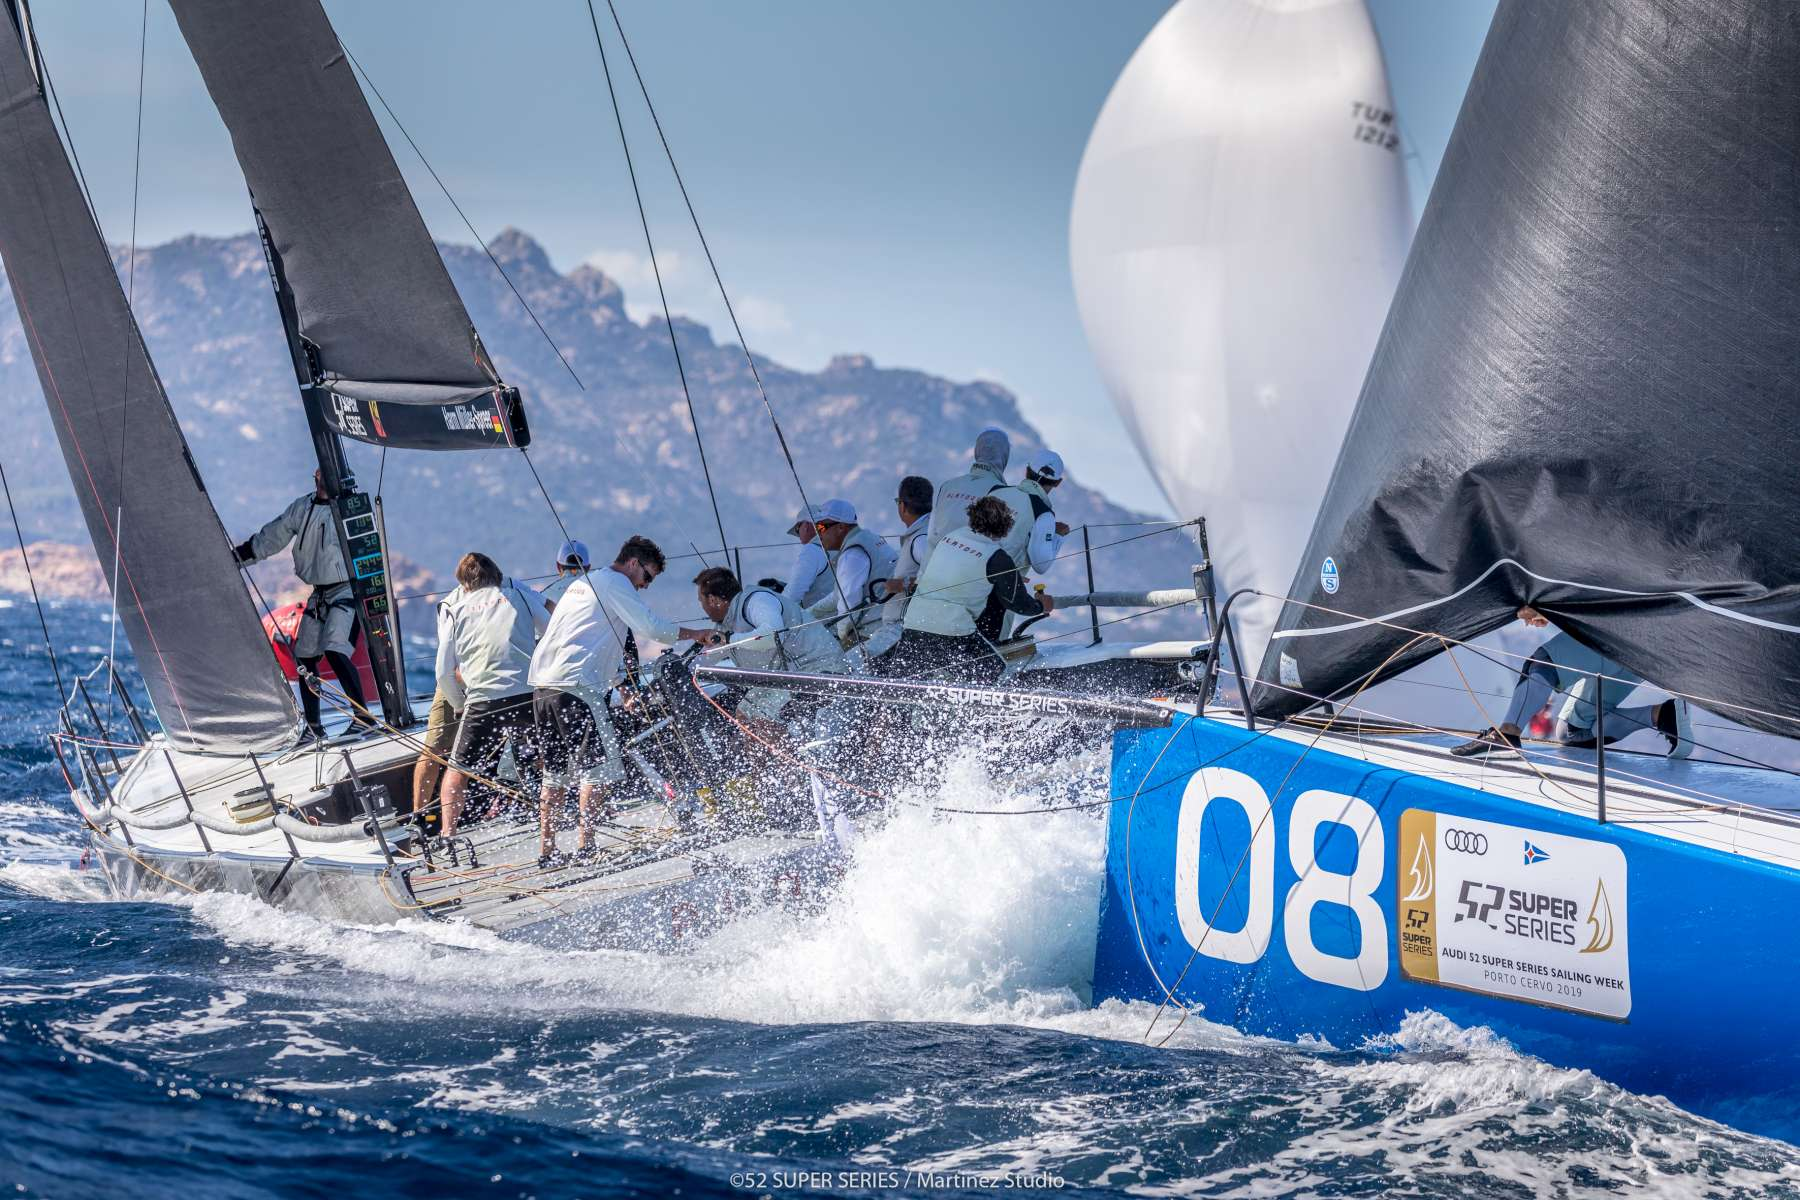 AUDI 52 SUPER SERIES SAILING WEEK - PHOTO DAY 2 ONLINE - NEWS - Yacht Club Costa Smeralda